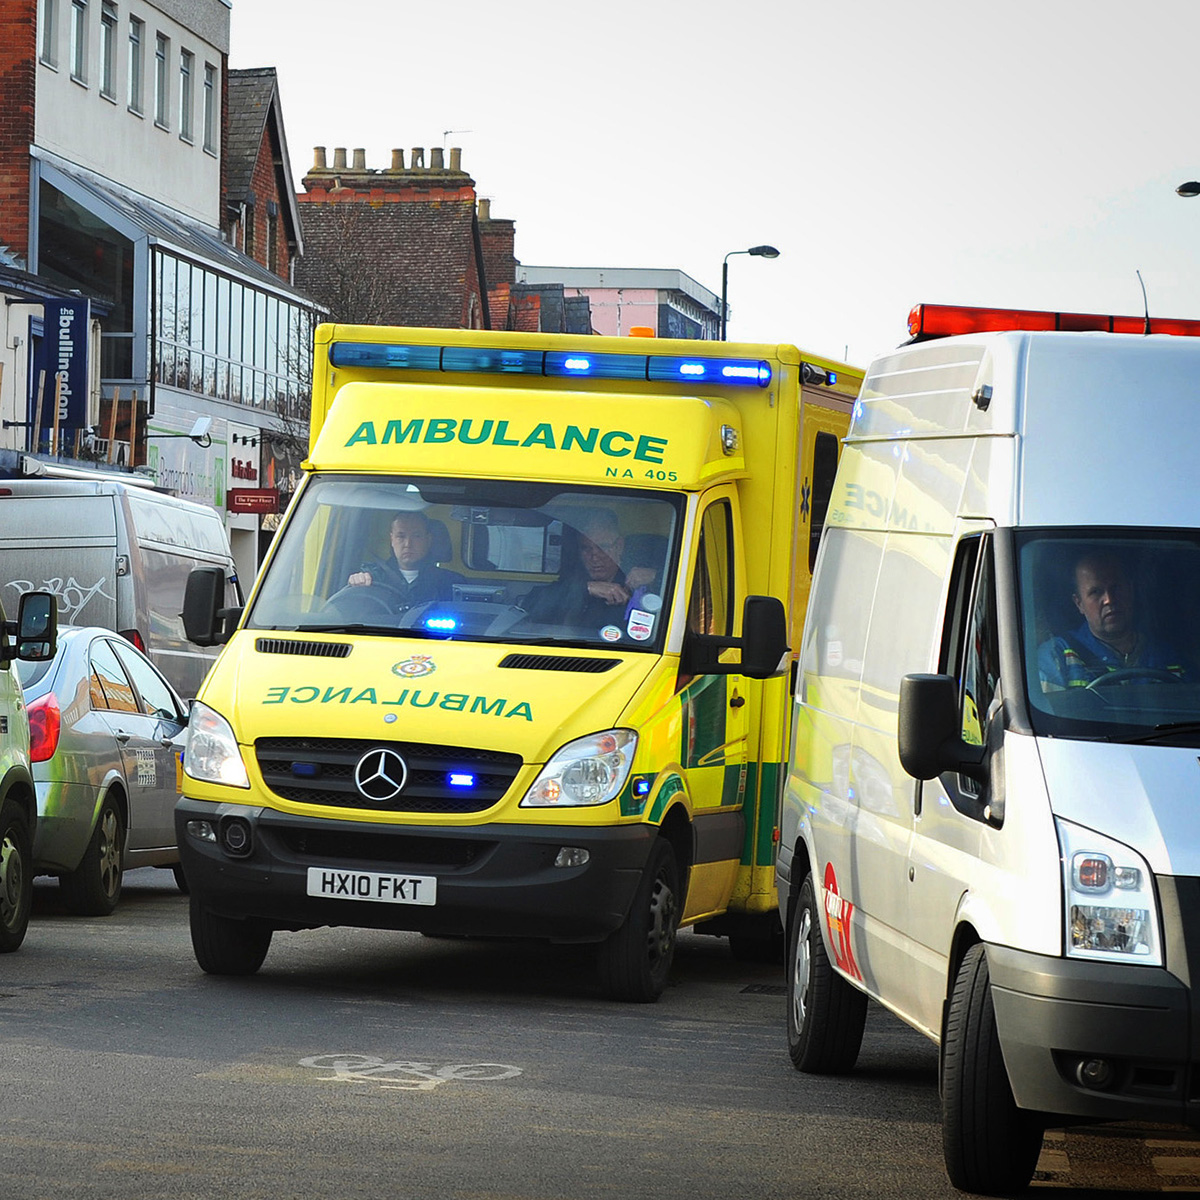 Ambulance service admits data leak